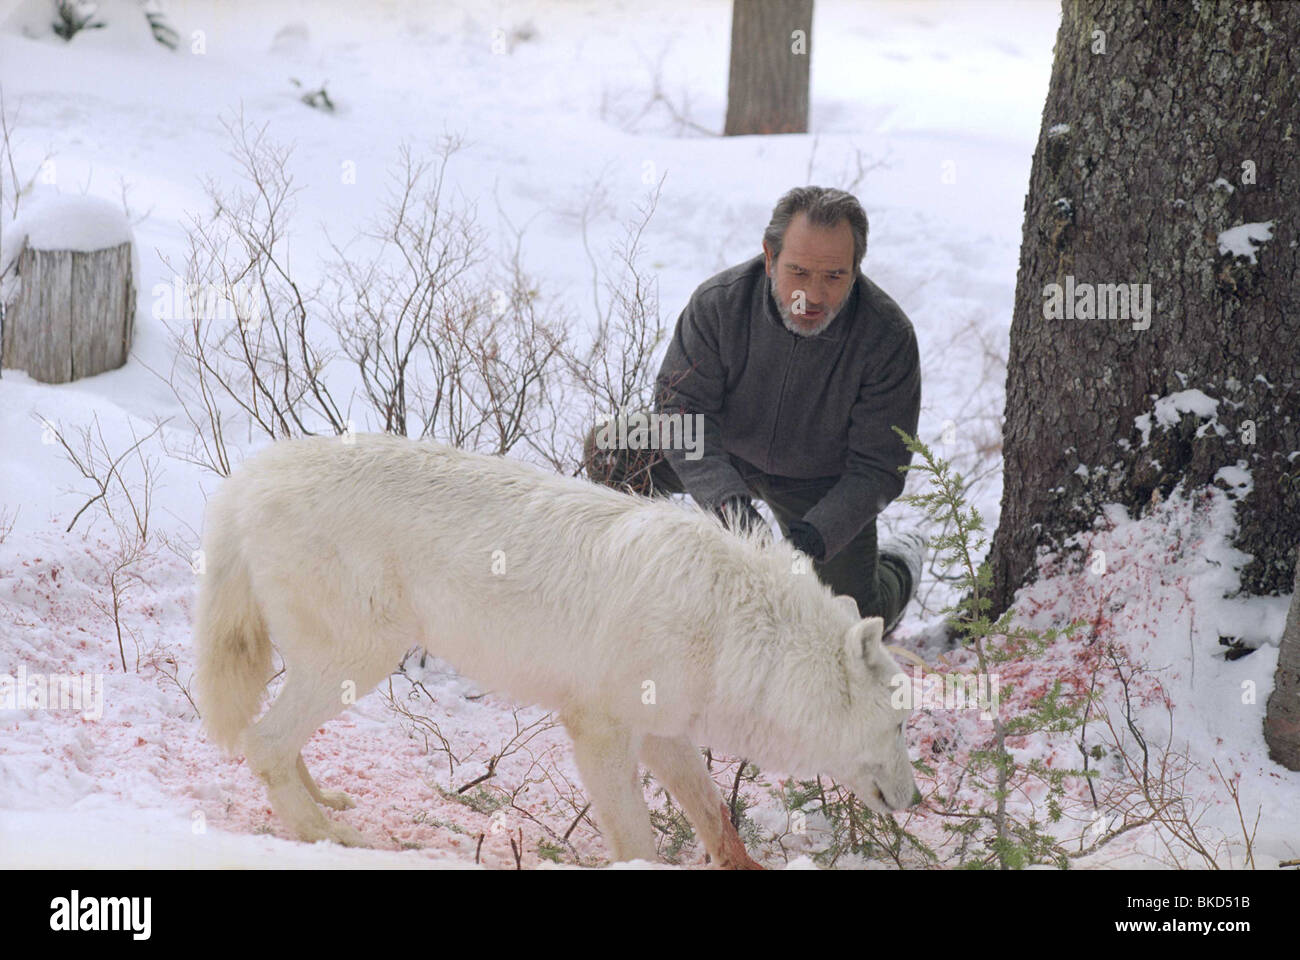 THE HUNTED (2003) TOMMY LEE JONES HNTE 001-1096 - Stock Image